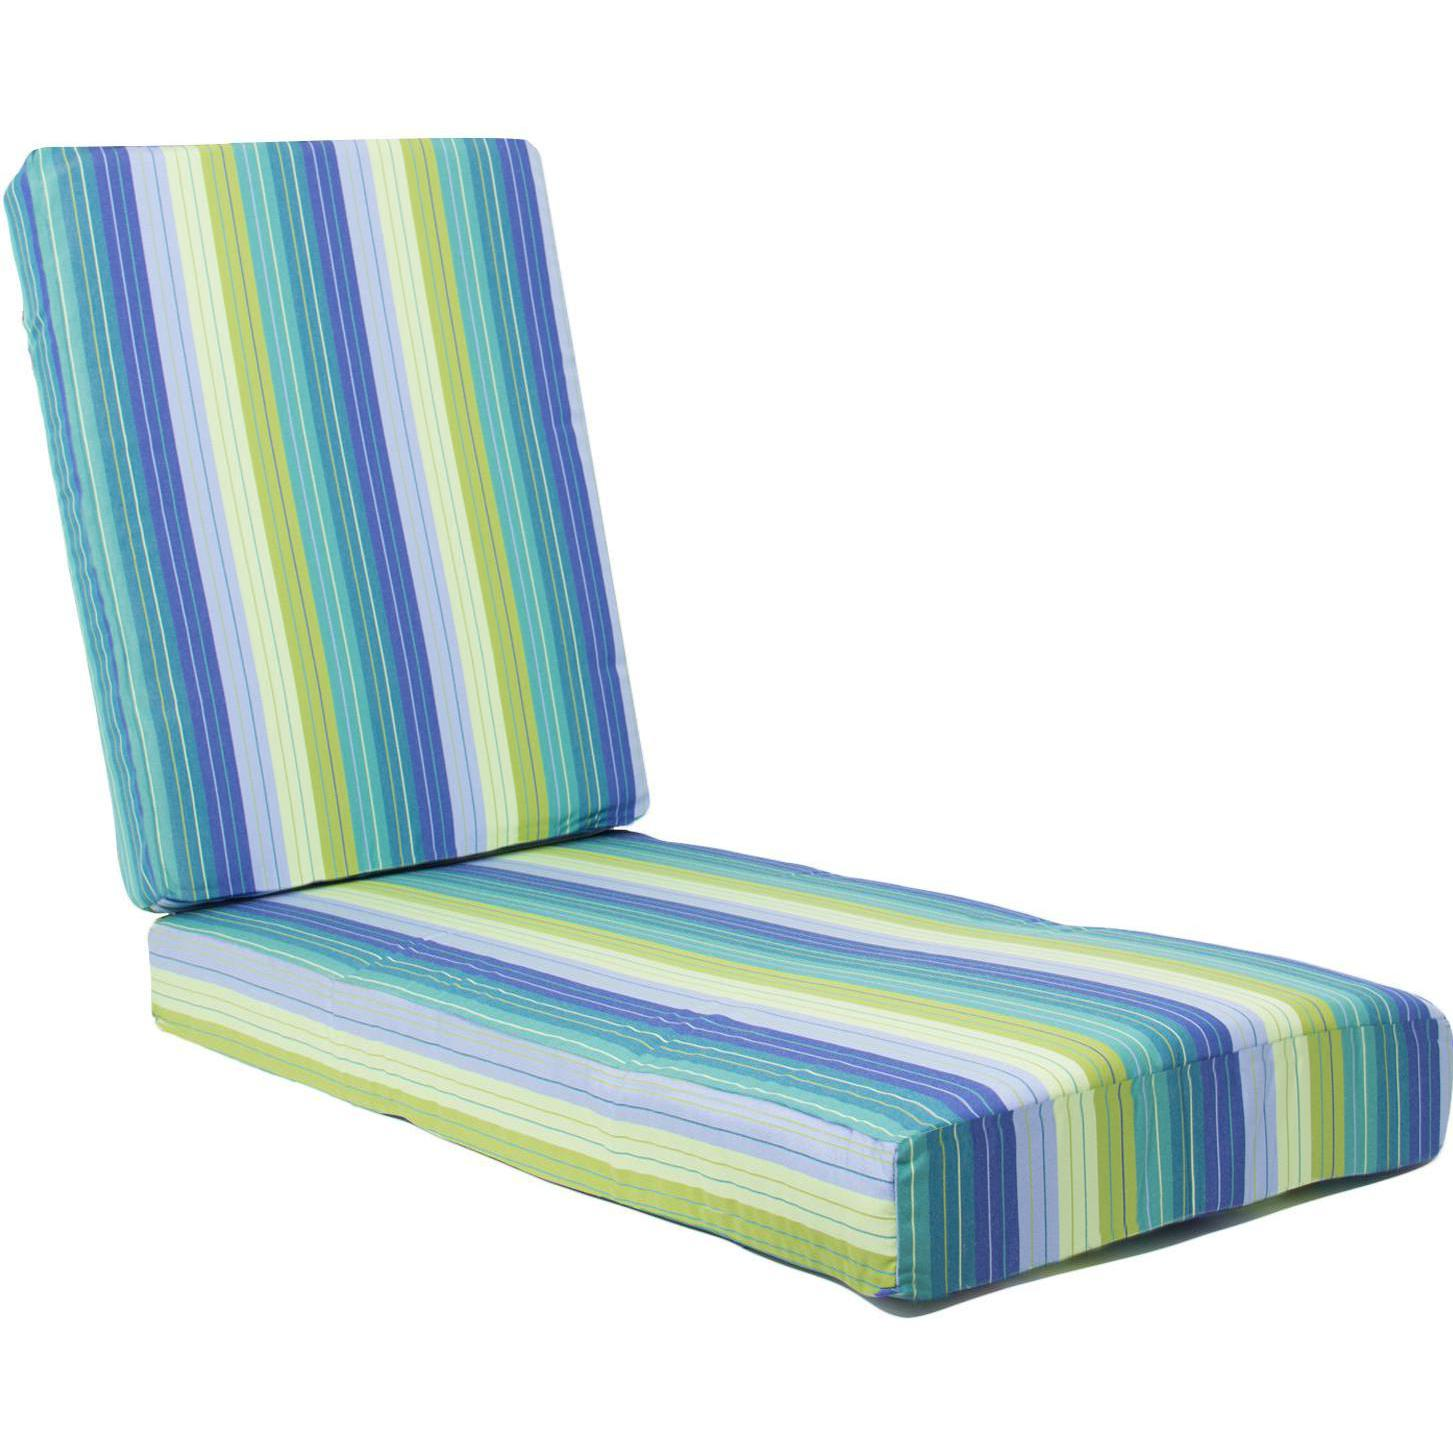 Ultimatepatio.com Extra Long Replacement Chaise Lounge Cushion With Knife Edge - Seville Seaside